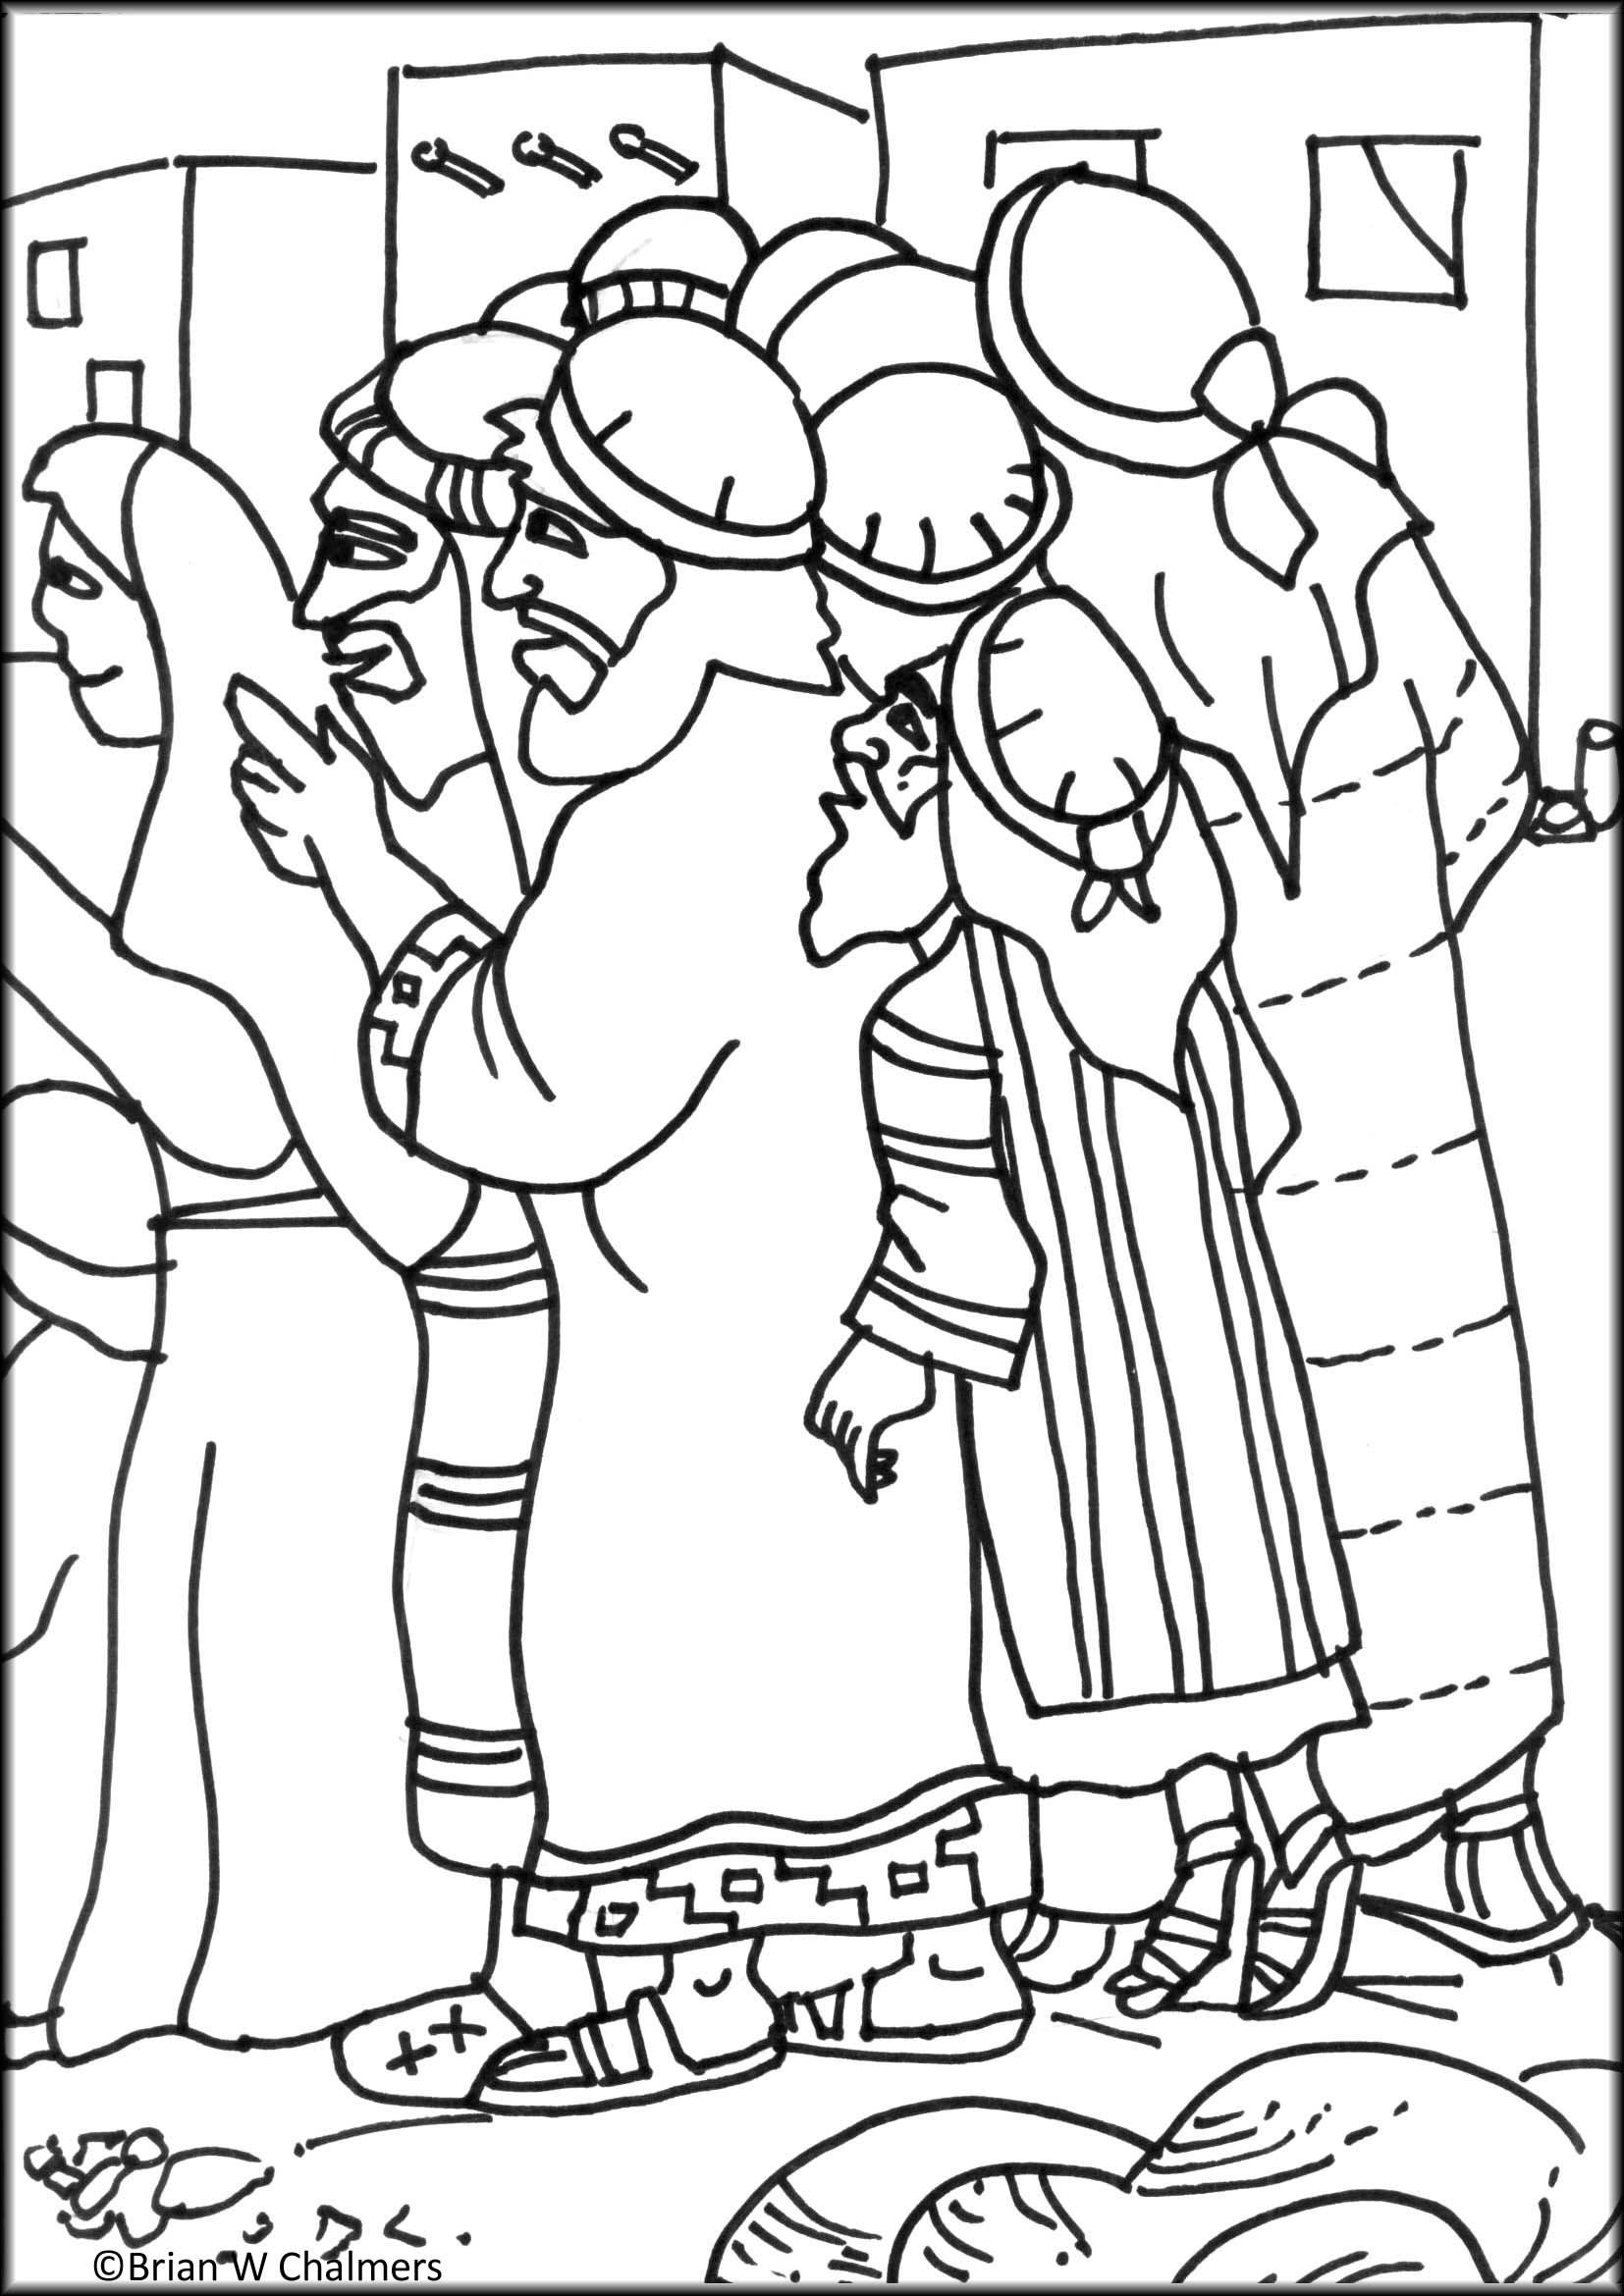 Free bible story coloring pages for kids - Zaccheus Coloring Page Zacchaeuschildren Ministryvbs 2016bible Craftsbible Storiesbible